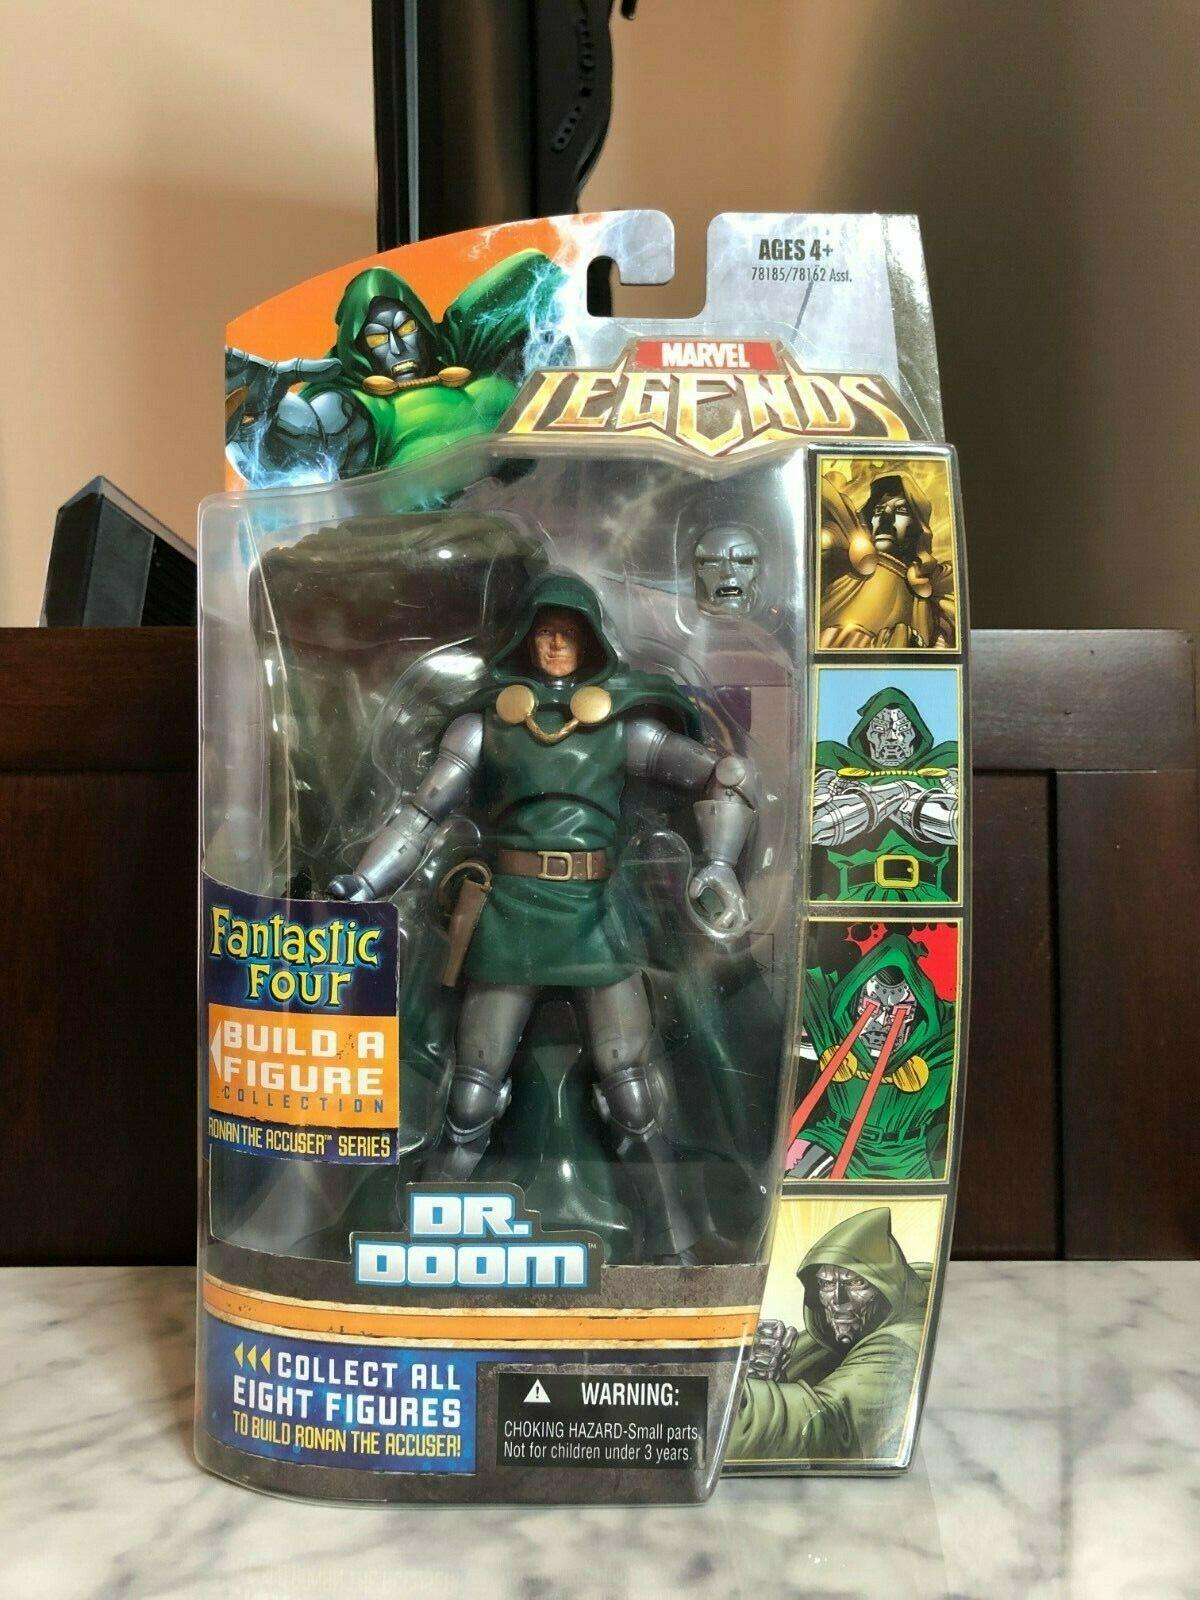 Toy Biz Marvel Legends Ronan the Accuser Series Dr. Doom NEW and SEALED